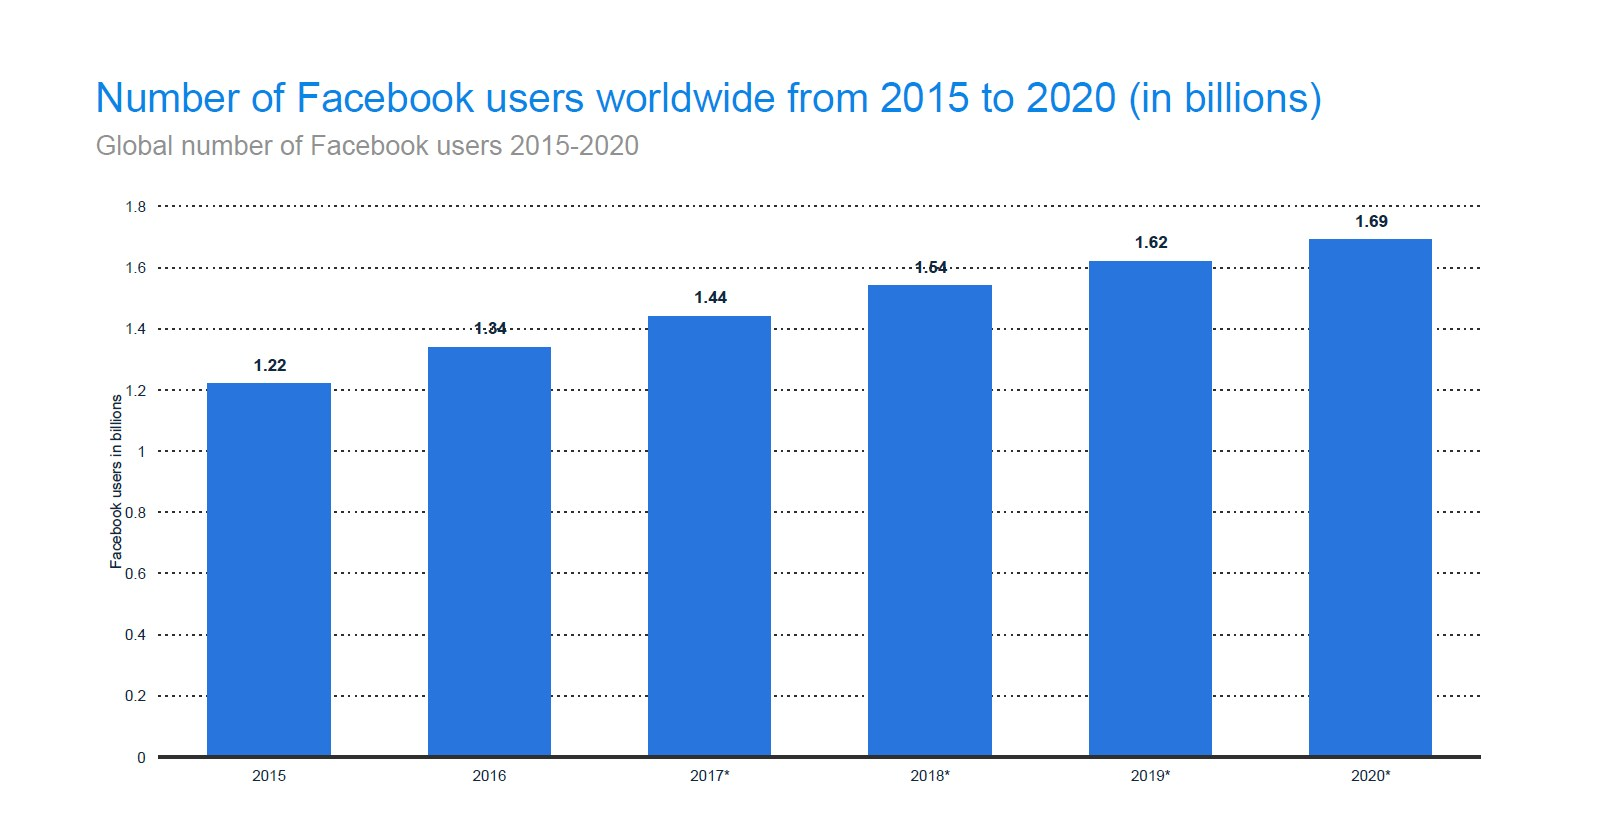 The number of Facebook users will continue to rise through 2020